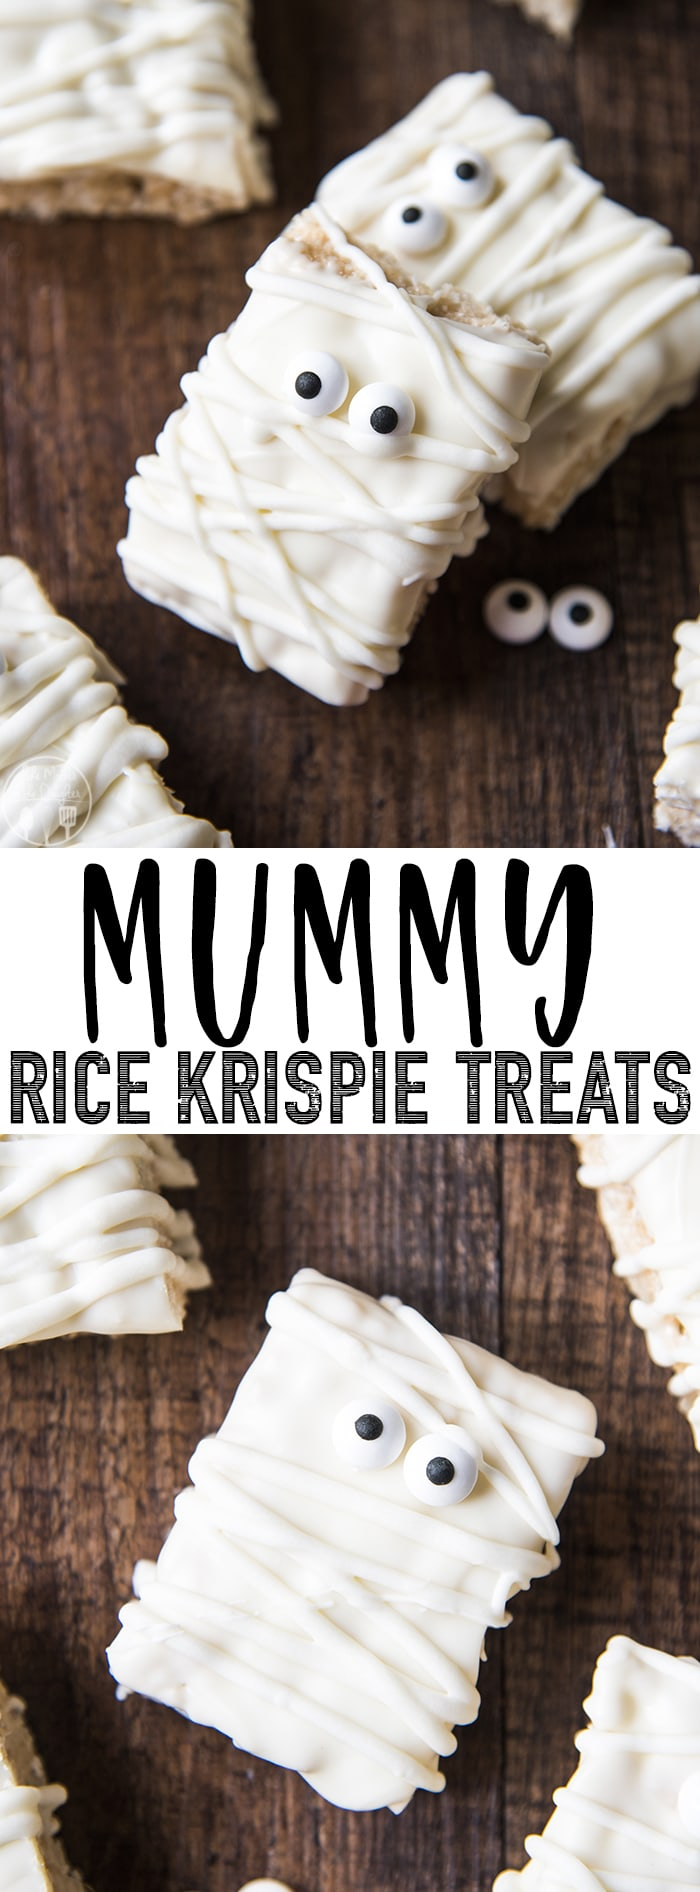 These mummy rice krispie treats are such an easy, and adorable Halloween treat!